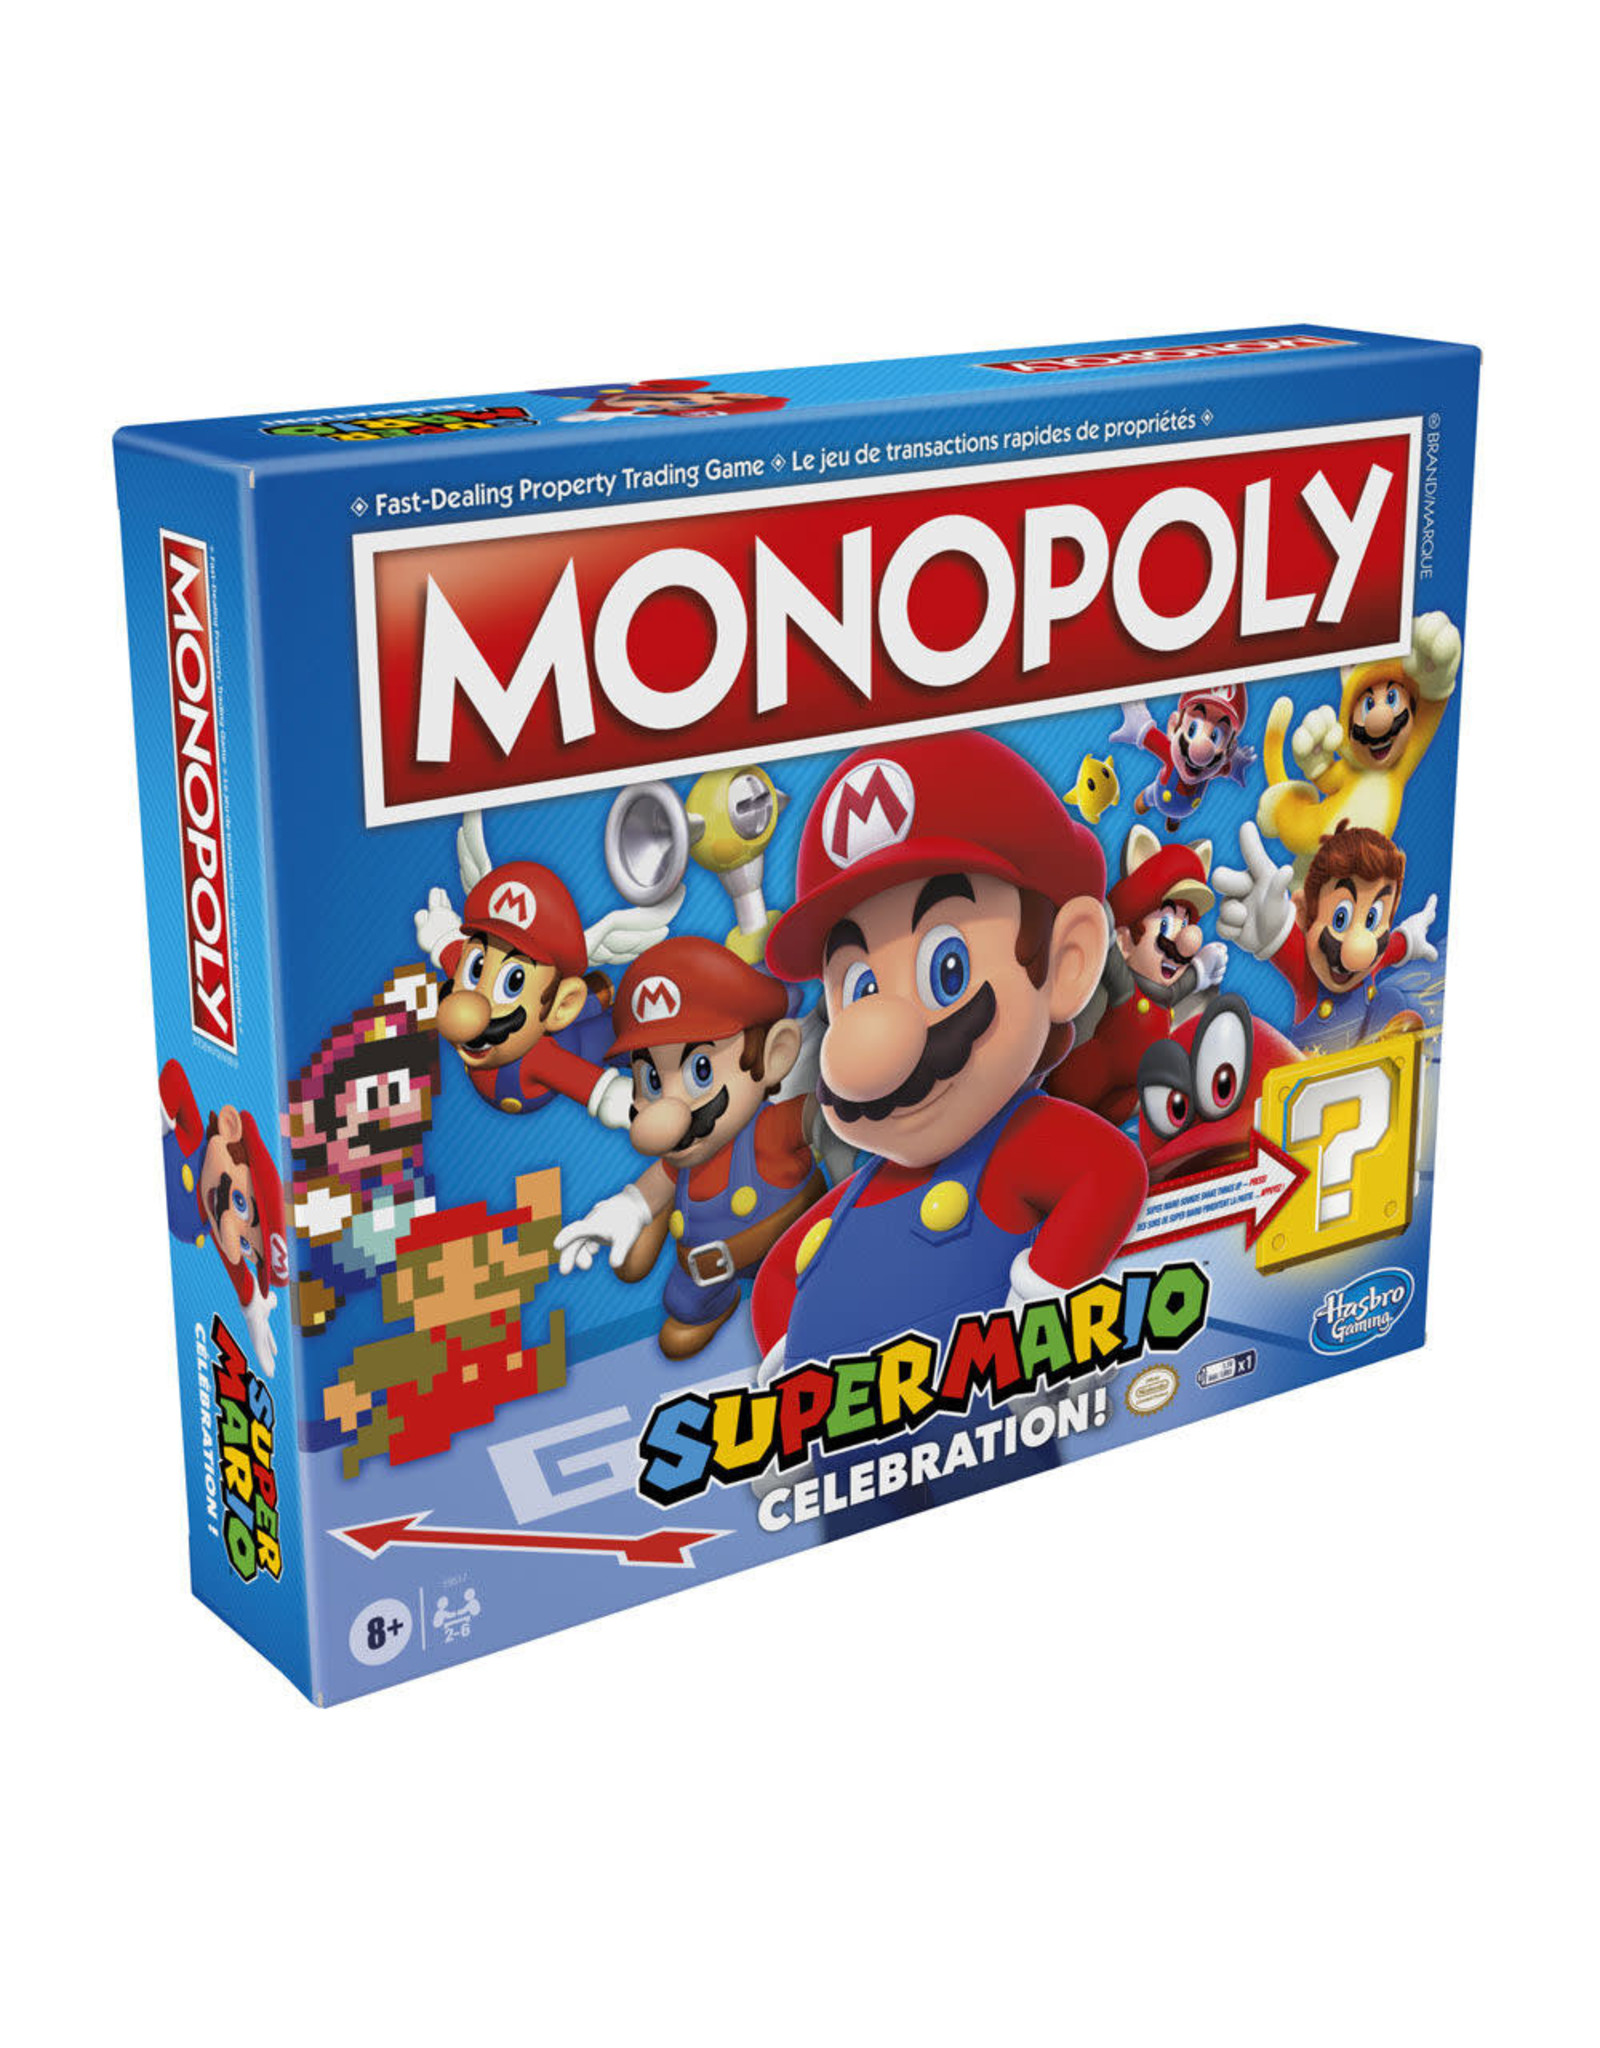 Hasbro Super Mario Celebration! Monopoly